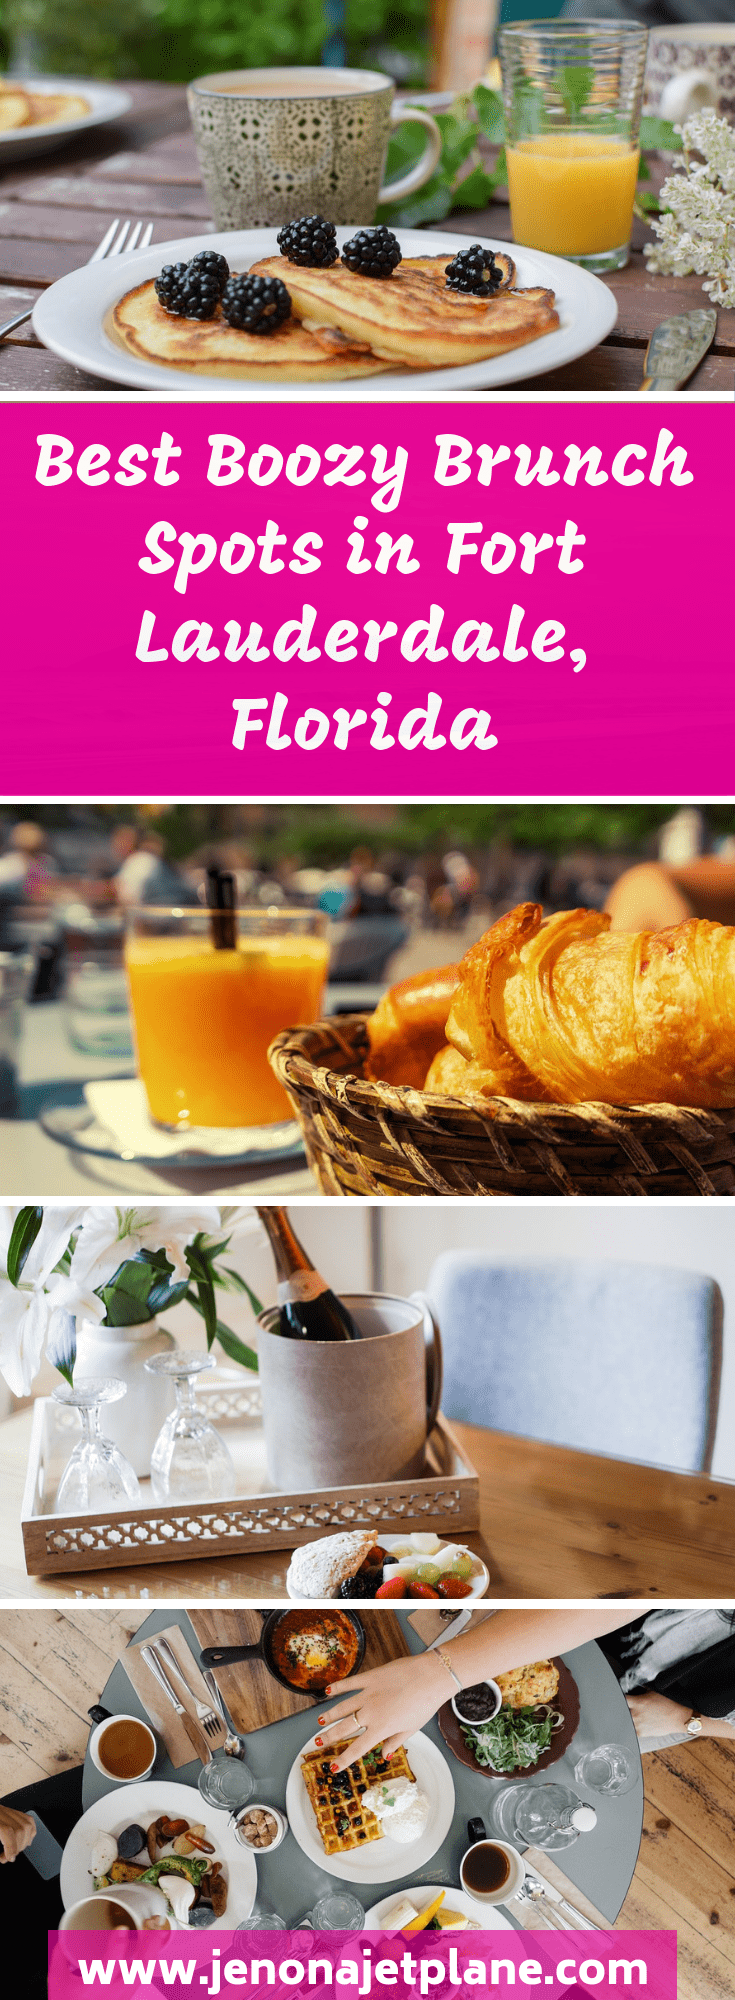 Ready to get your brunch on? Downtown Fort Lauderdale has an impressive brunch scene, with restaurants serving bottomless mimosas on Saturdays and Sundays. Celebrate your Fort Lauderdale vacation with a mimosa at these top spots! Don't miss the best brunch deals in Fort Lauderdale, Florida. Save to your travel board for future reference. #fortlauderdale #brunchspots #travelreviews #floridatravel #visitflorida